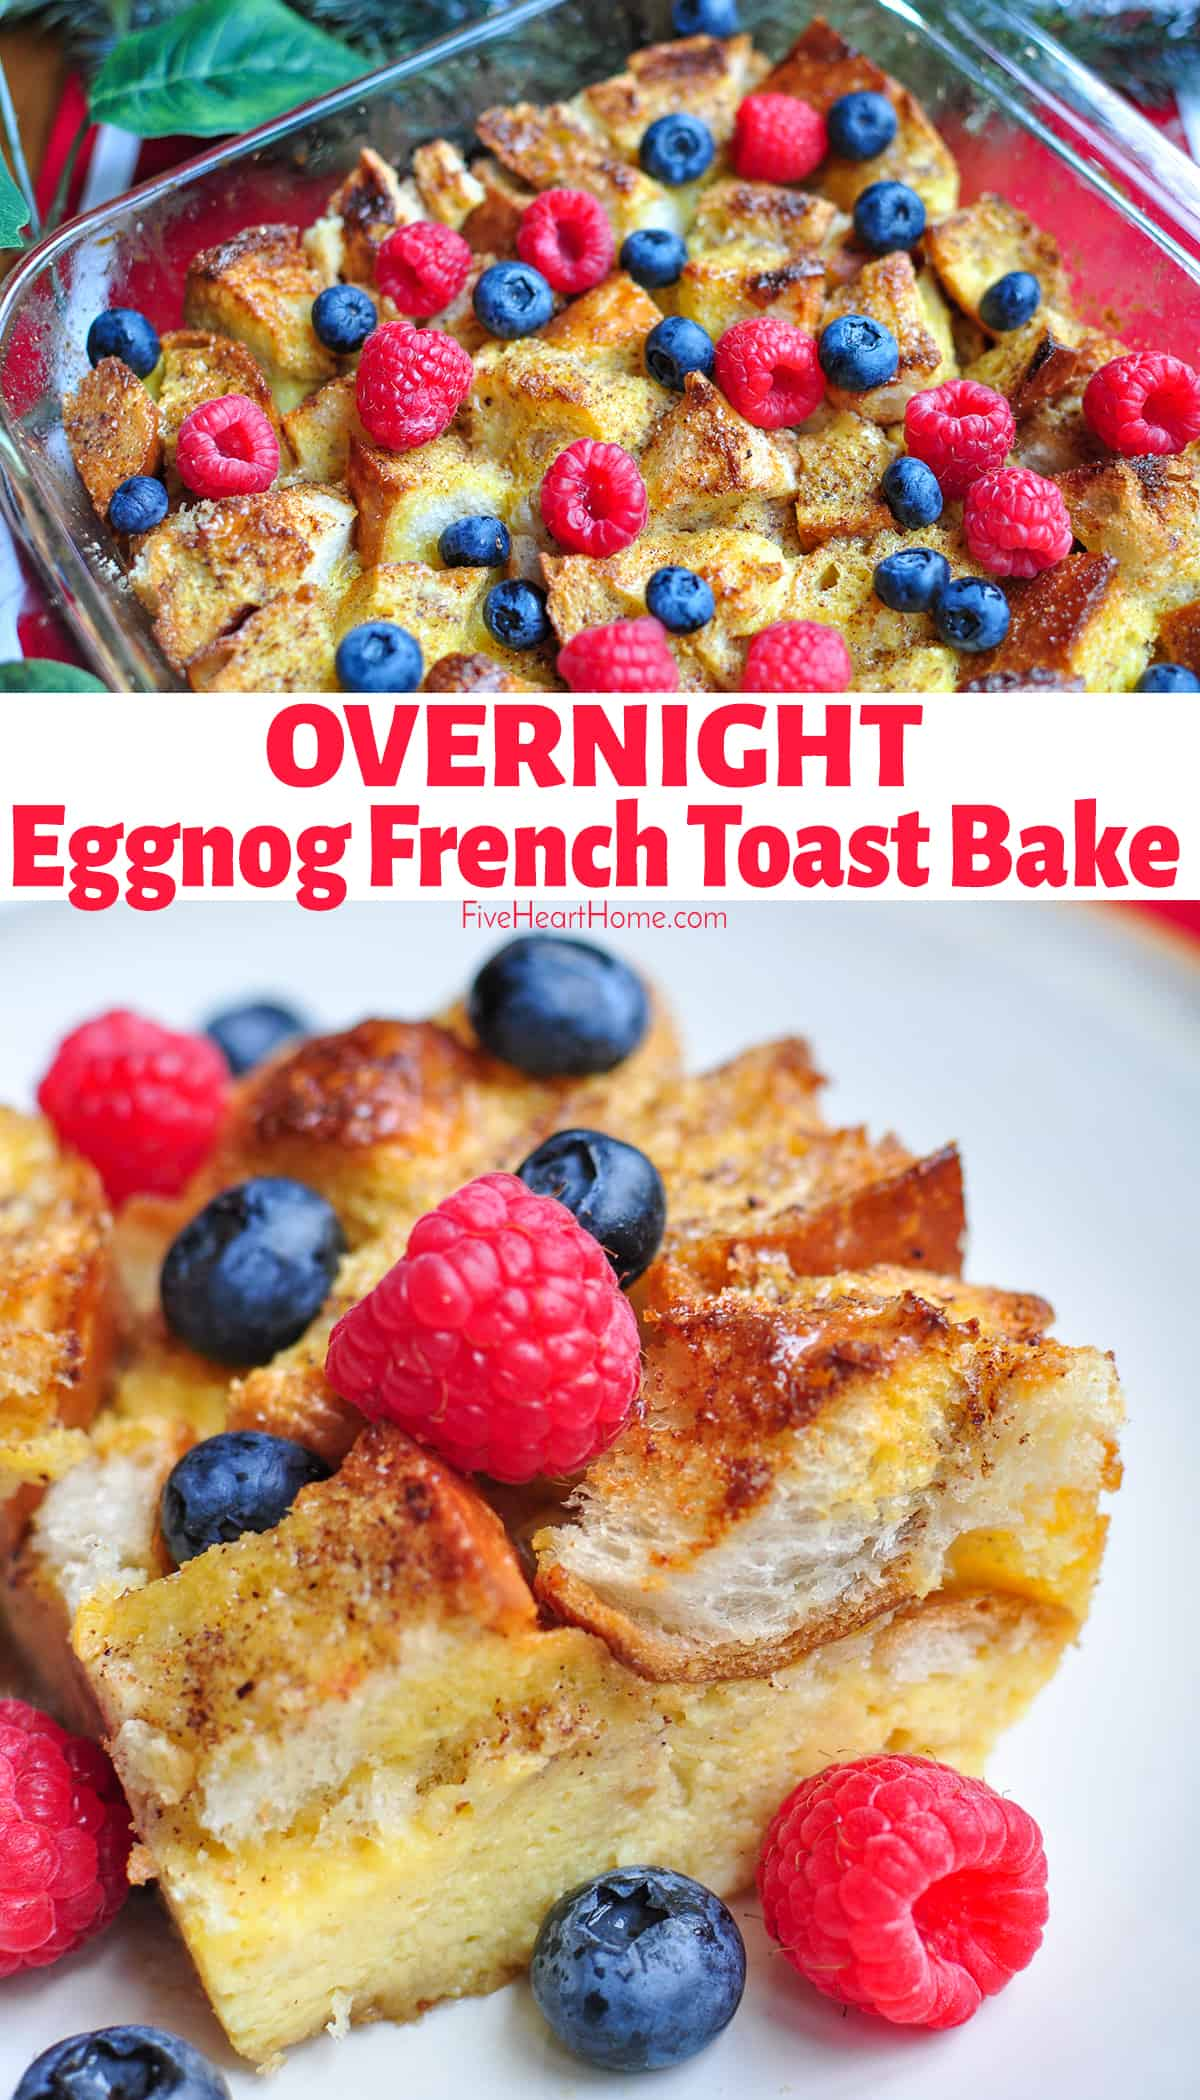 Eggnog French Toast Bake ~ a Christmas morning tradition! This quick-to-prepare overnight casserole features French bread soaked in an eggnog custard. In the morning, simply pop it in the oven for a special holiday breakfast! | FiveHeartHome.com via @fivehearthome